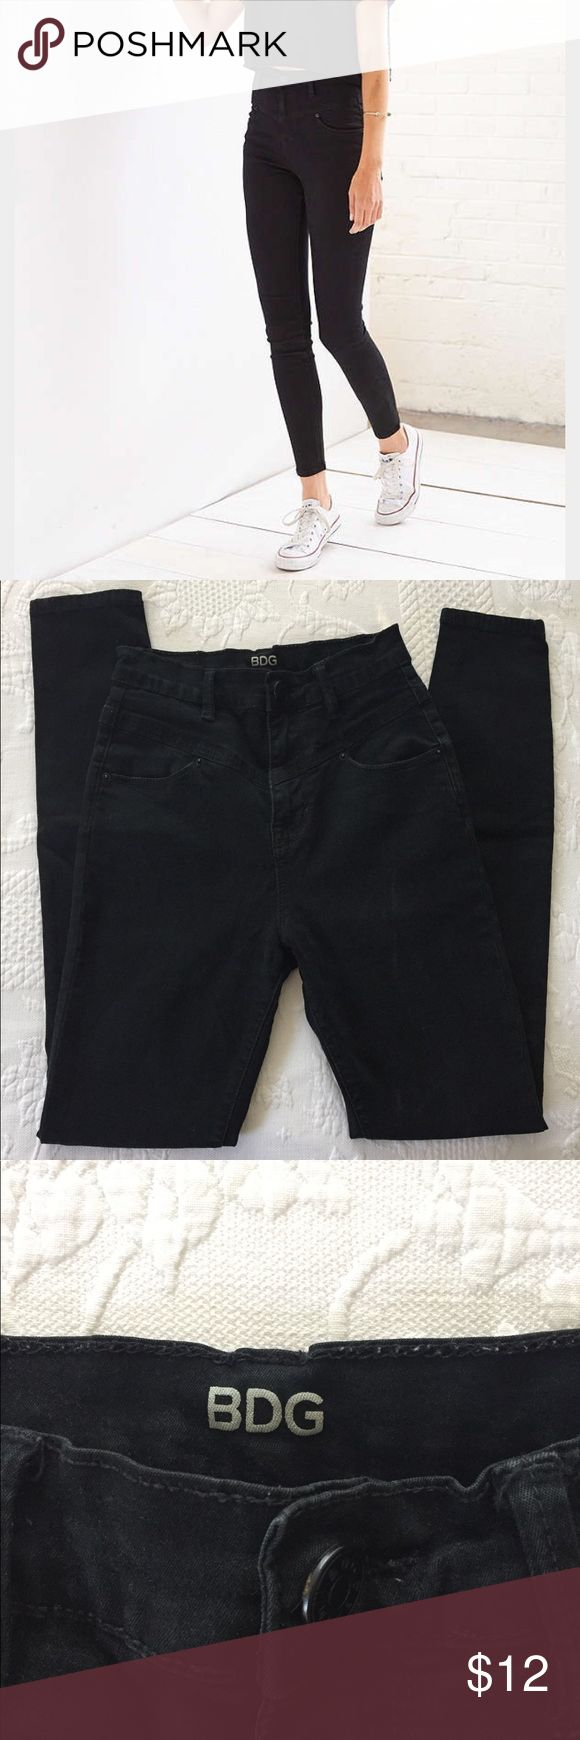 BDG Black High Rise Pants I'm letting these pants go for cheap because I wore them a lot one season! The material in the back is a bit thin from being worn so much and there is a small hole in the knee where I tripped and fell (no joke you can laugh). Otherwise these pants are in great condition! Offer is FIRM at $12. Size 25 but definitely fits like a 24. These will be great for someone who always wanted a pair of these but doesn't want to pay full price! Any questions please ask! BDG Pants…